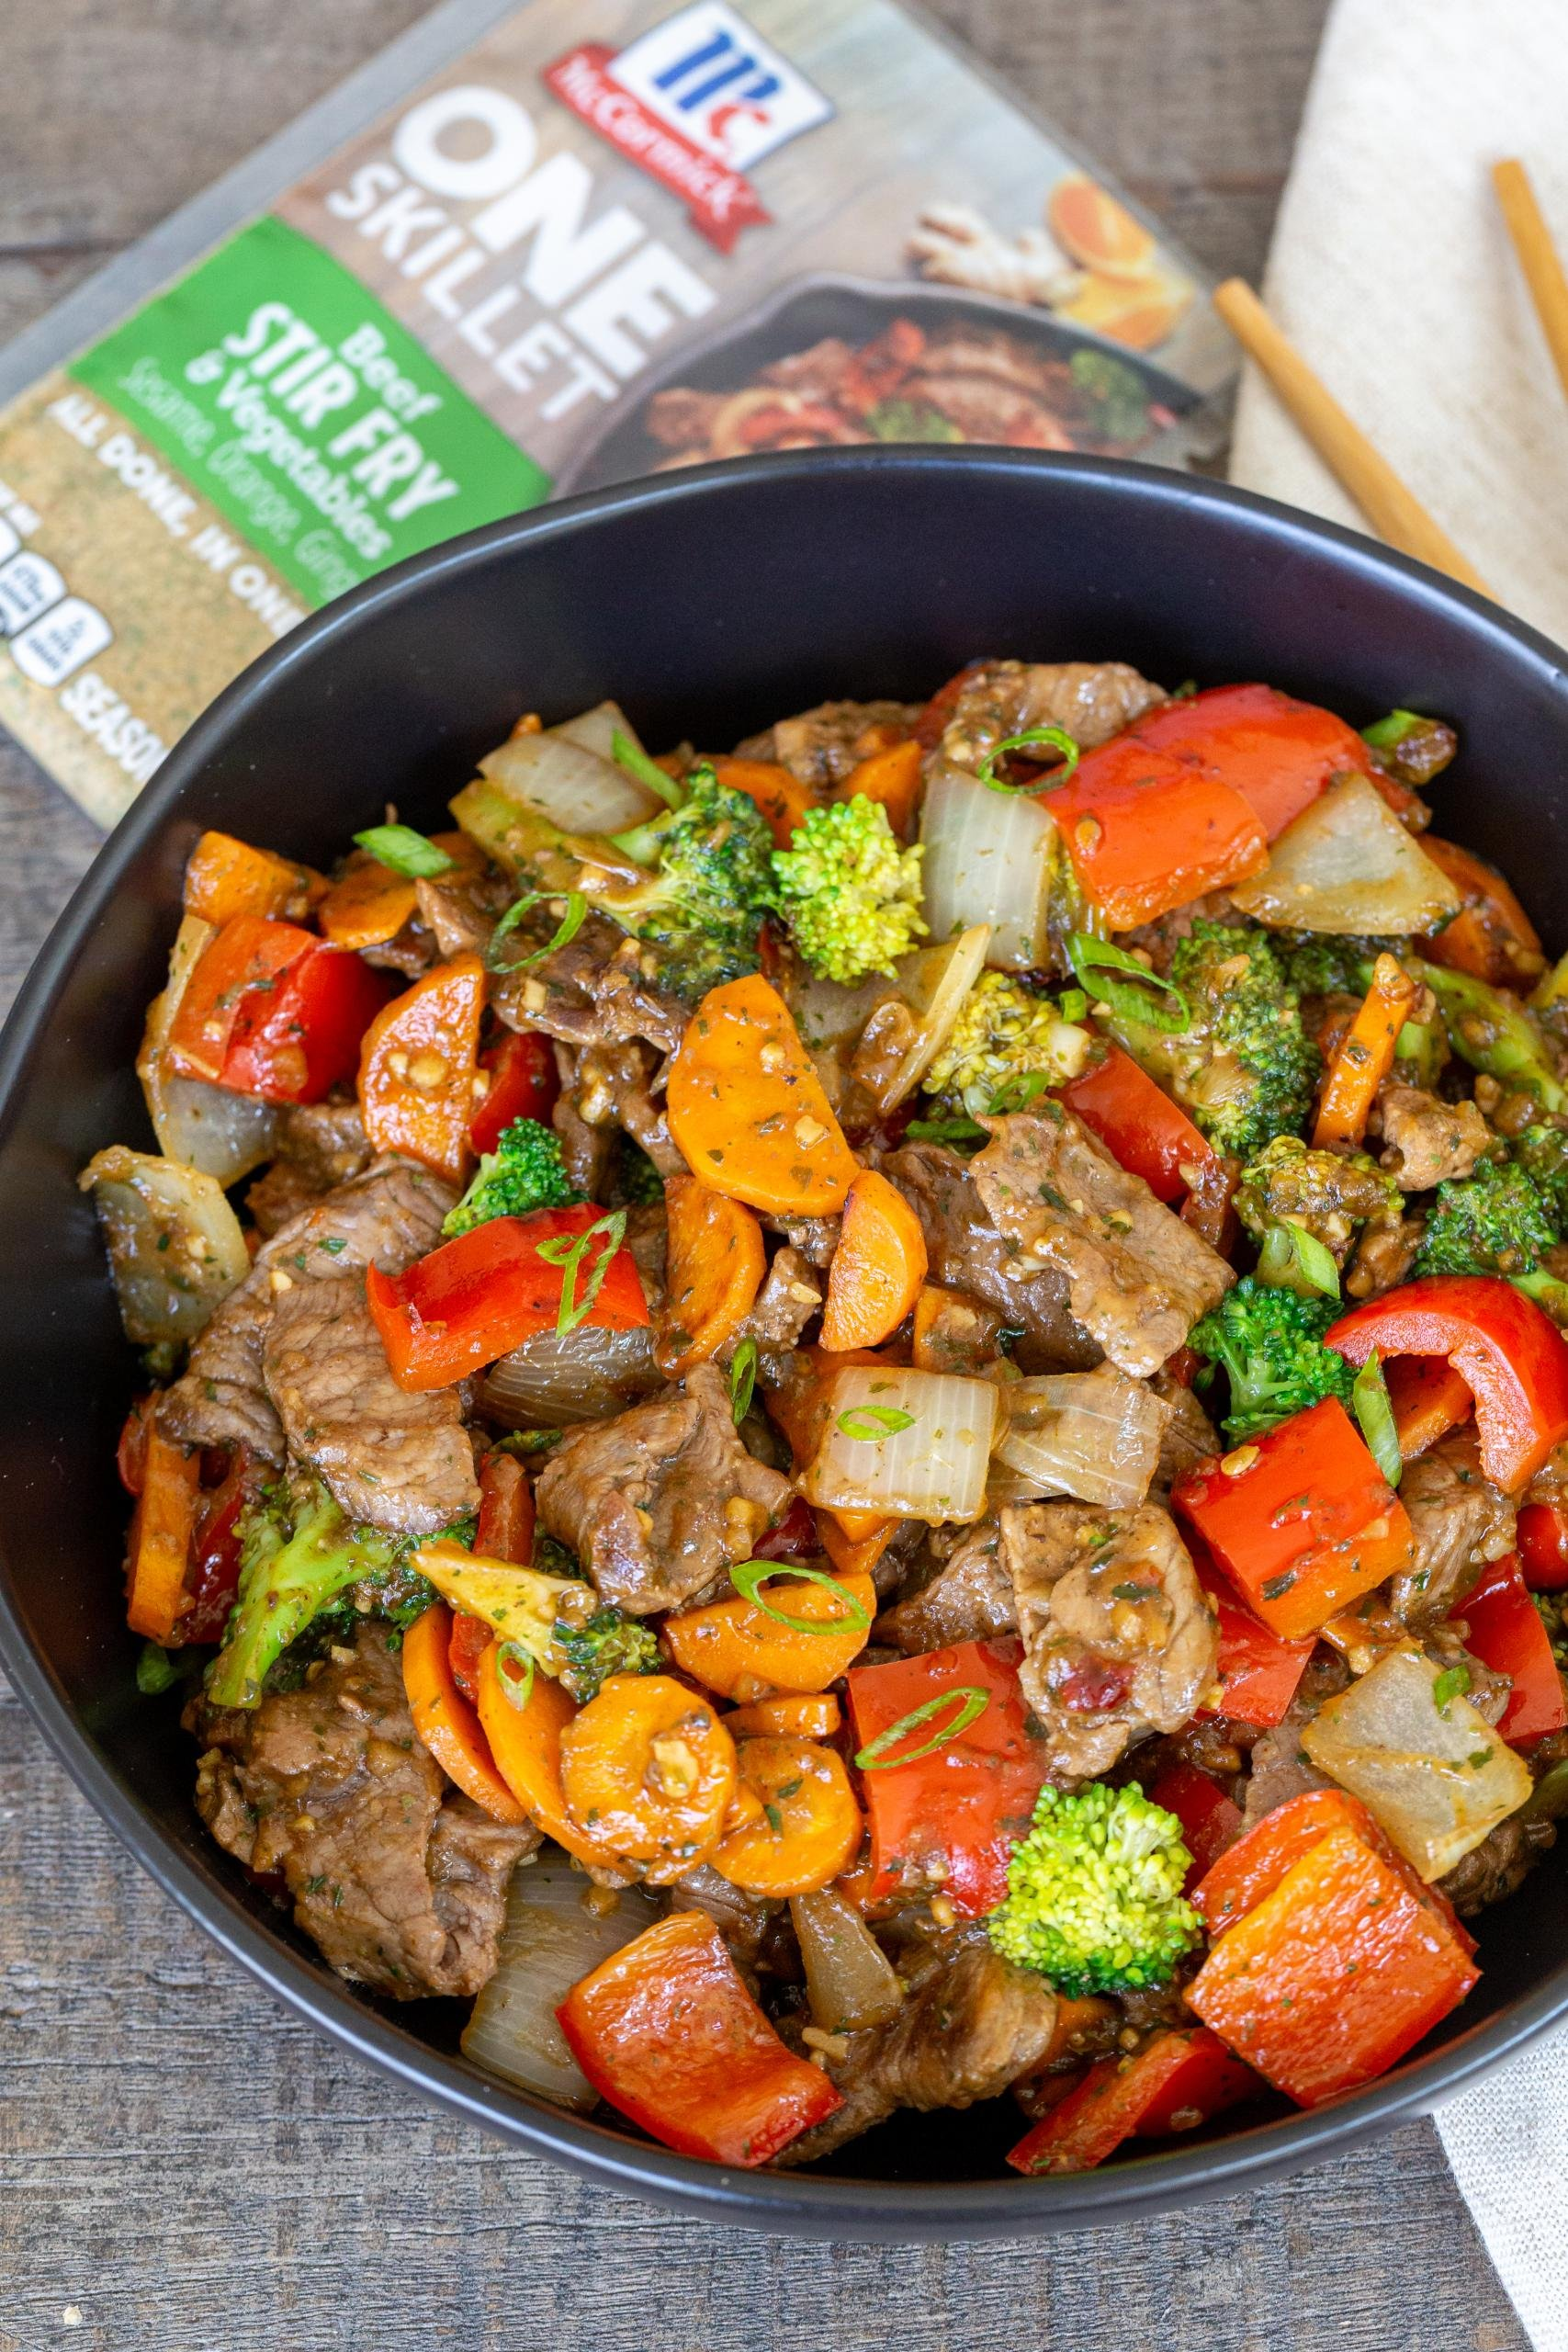 Beef Stir Fry in a bowl